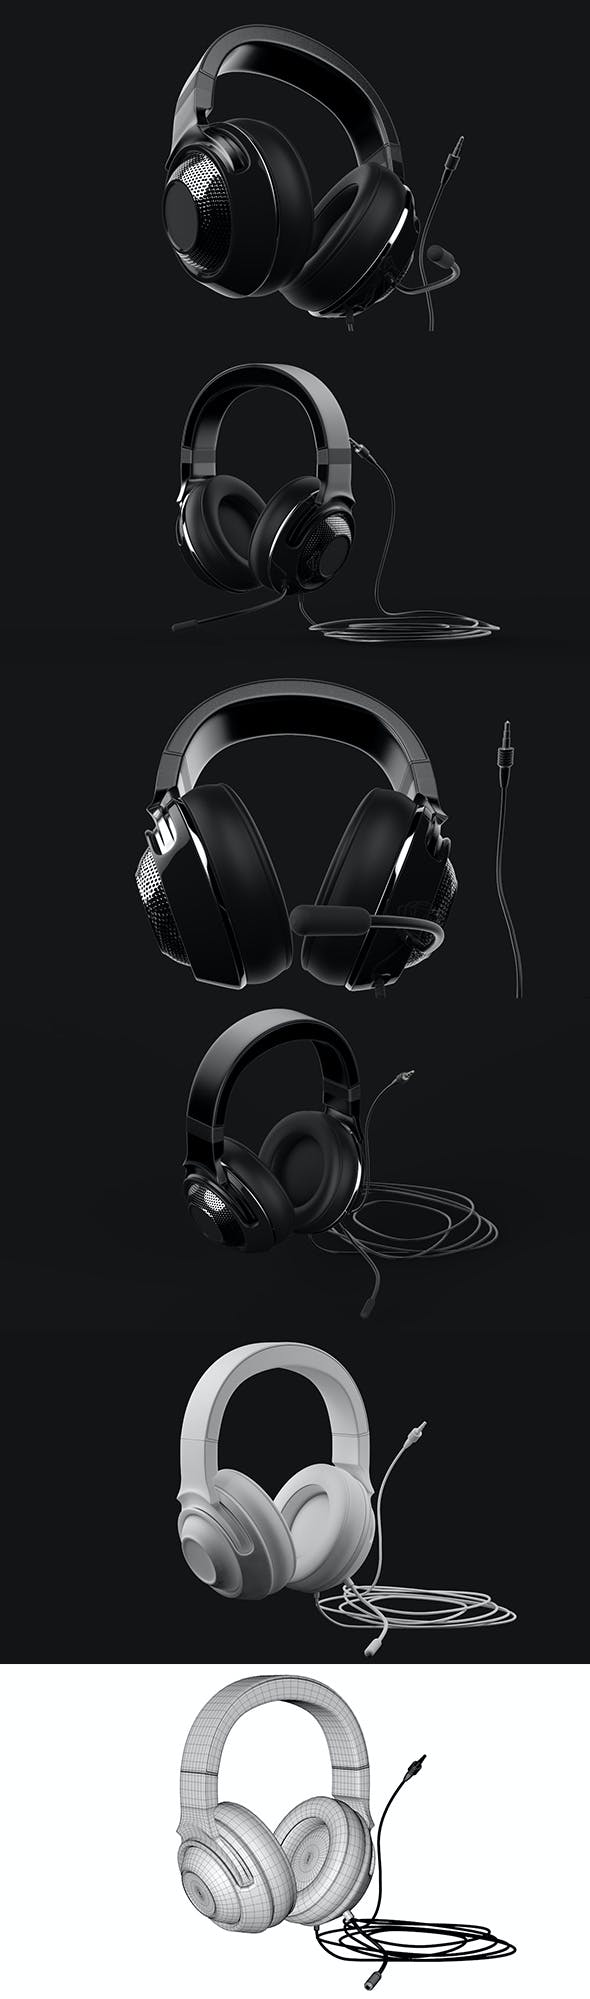 Headset 3D Modeling - 3DOcean Item for Sale